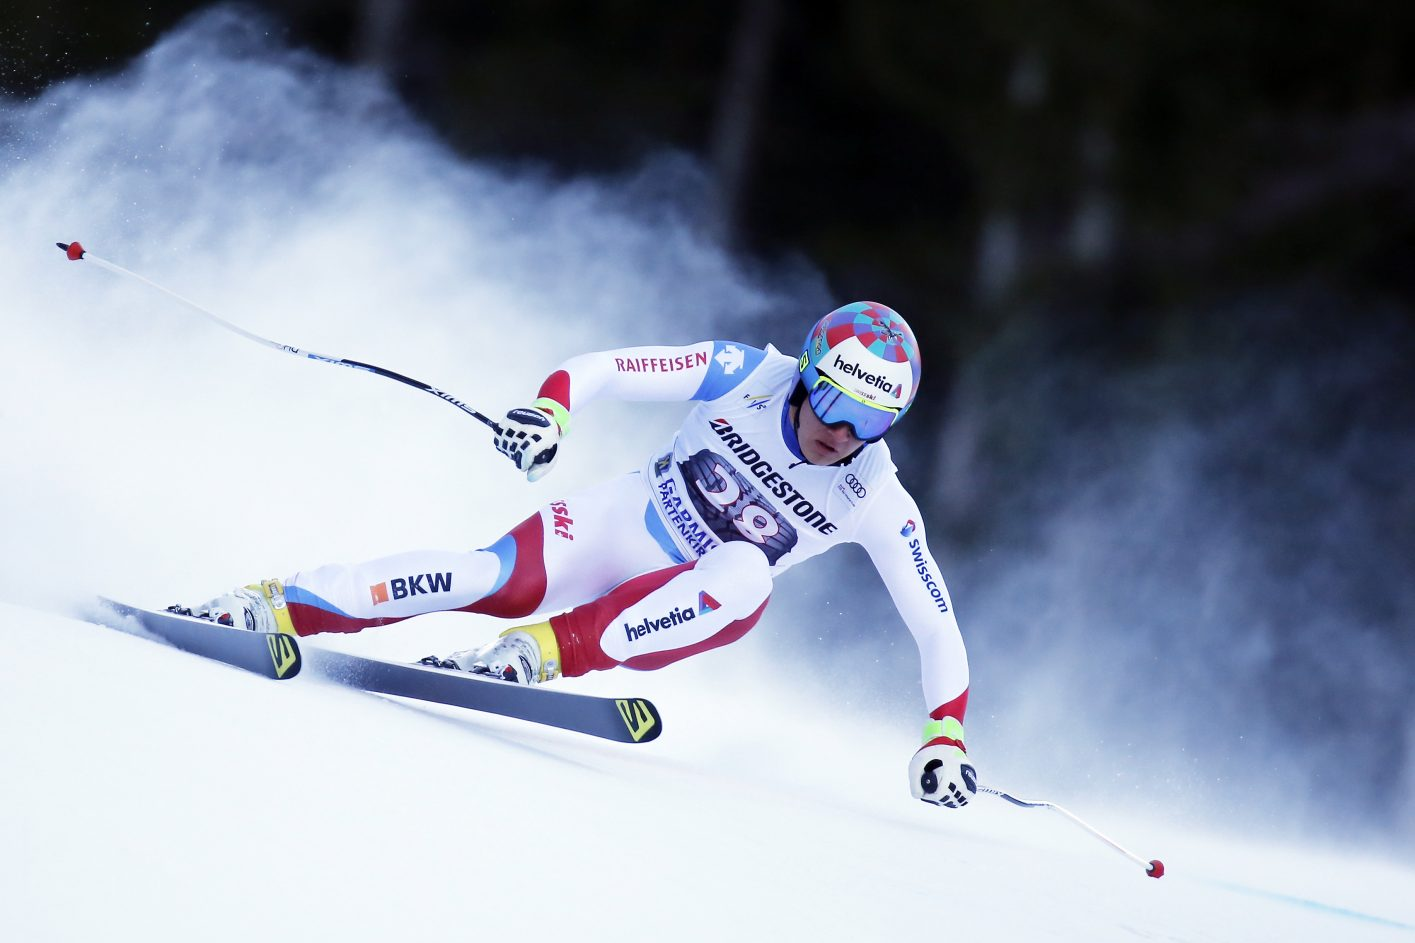 Audi FIS Alpine Ski World Cup - Men's Downhill Getty Images